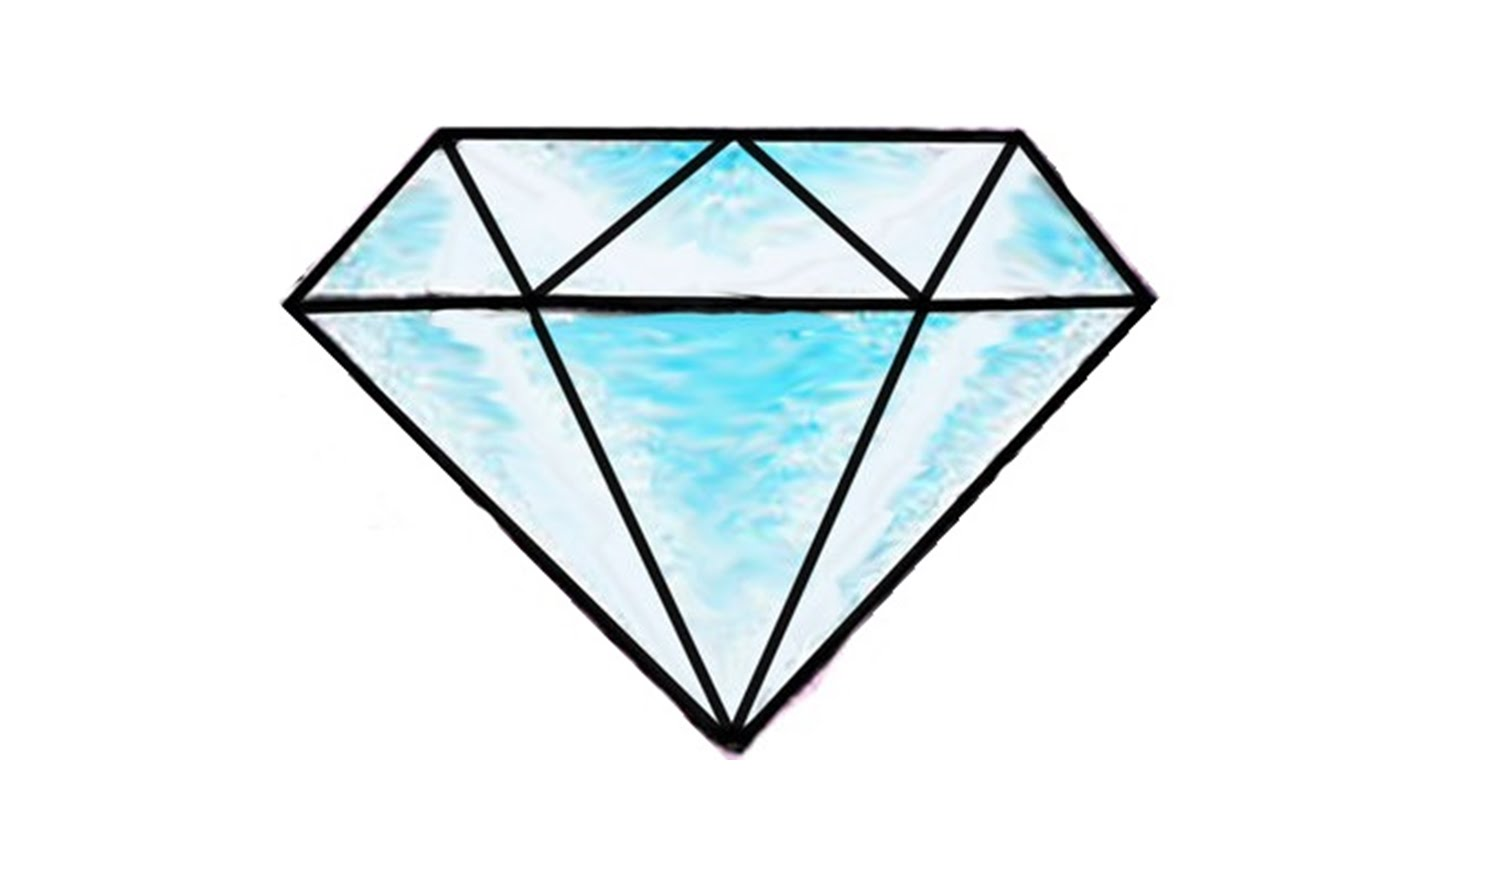 diamante drawing clipart best